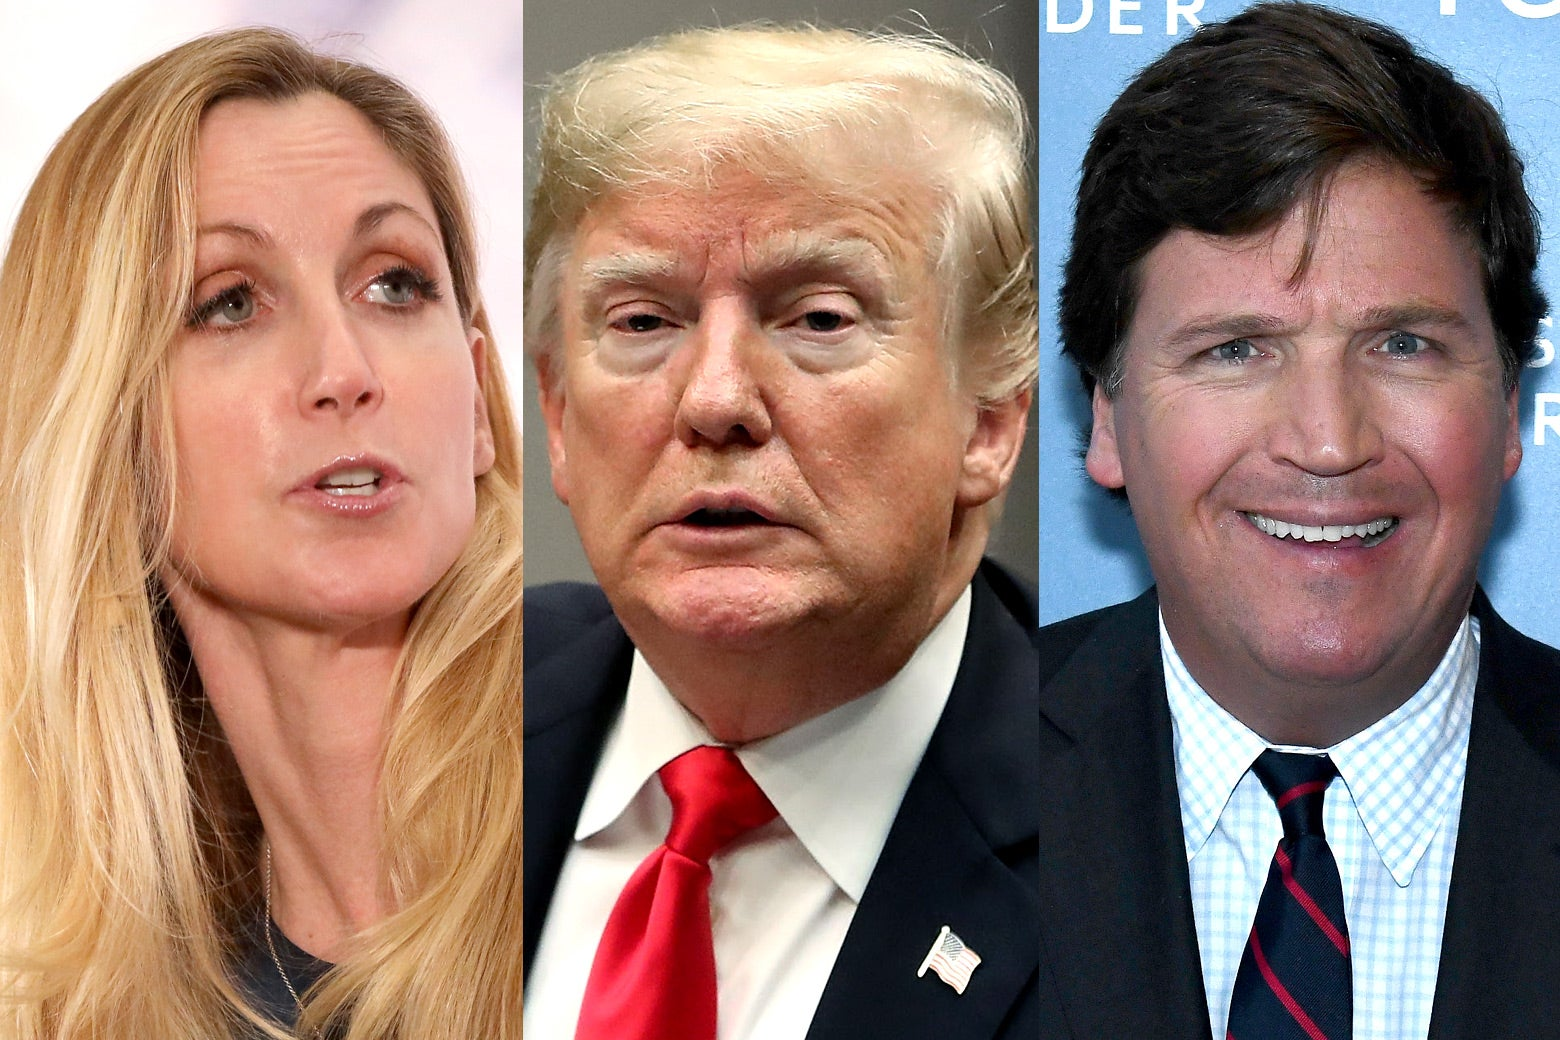 Ann Coulter, Donald Trump, and Tucker Carlson.